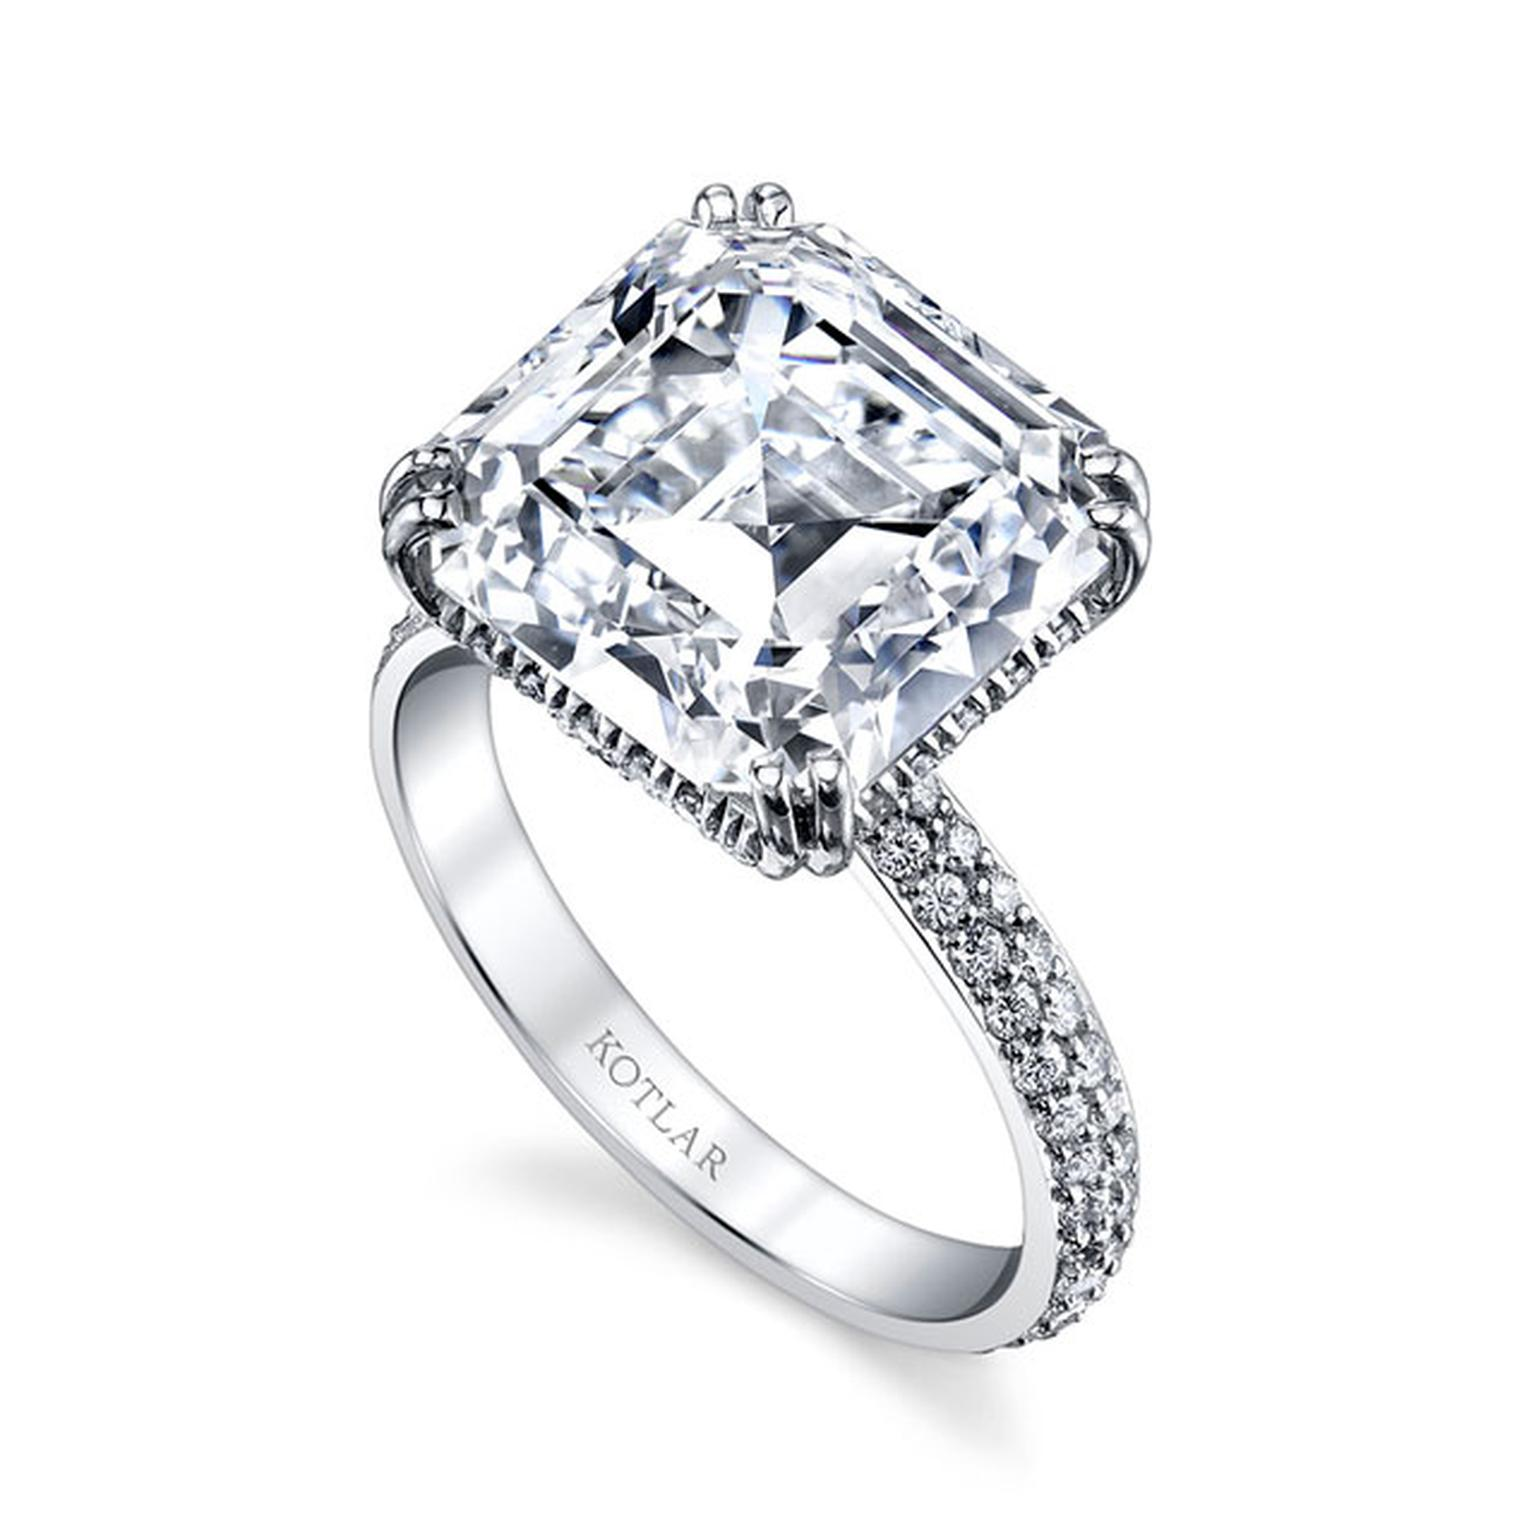 Harry Kotlar 8.81-carat Asscher cut diamond engagement ring